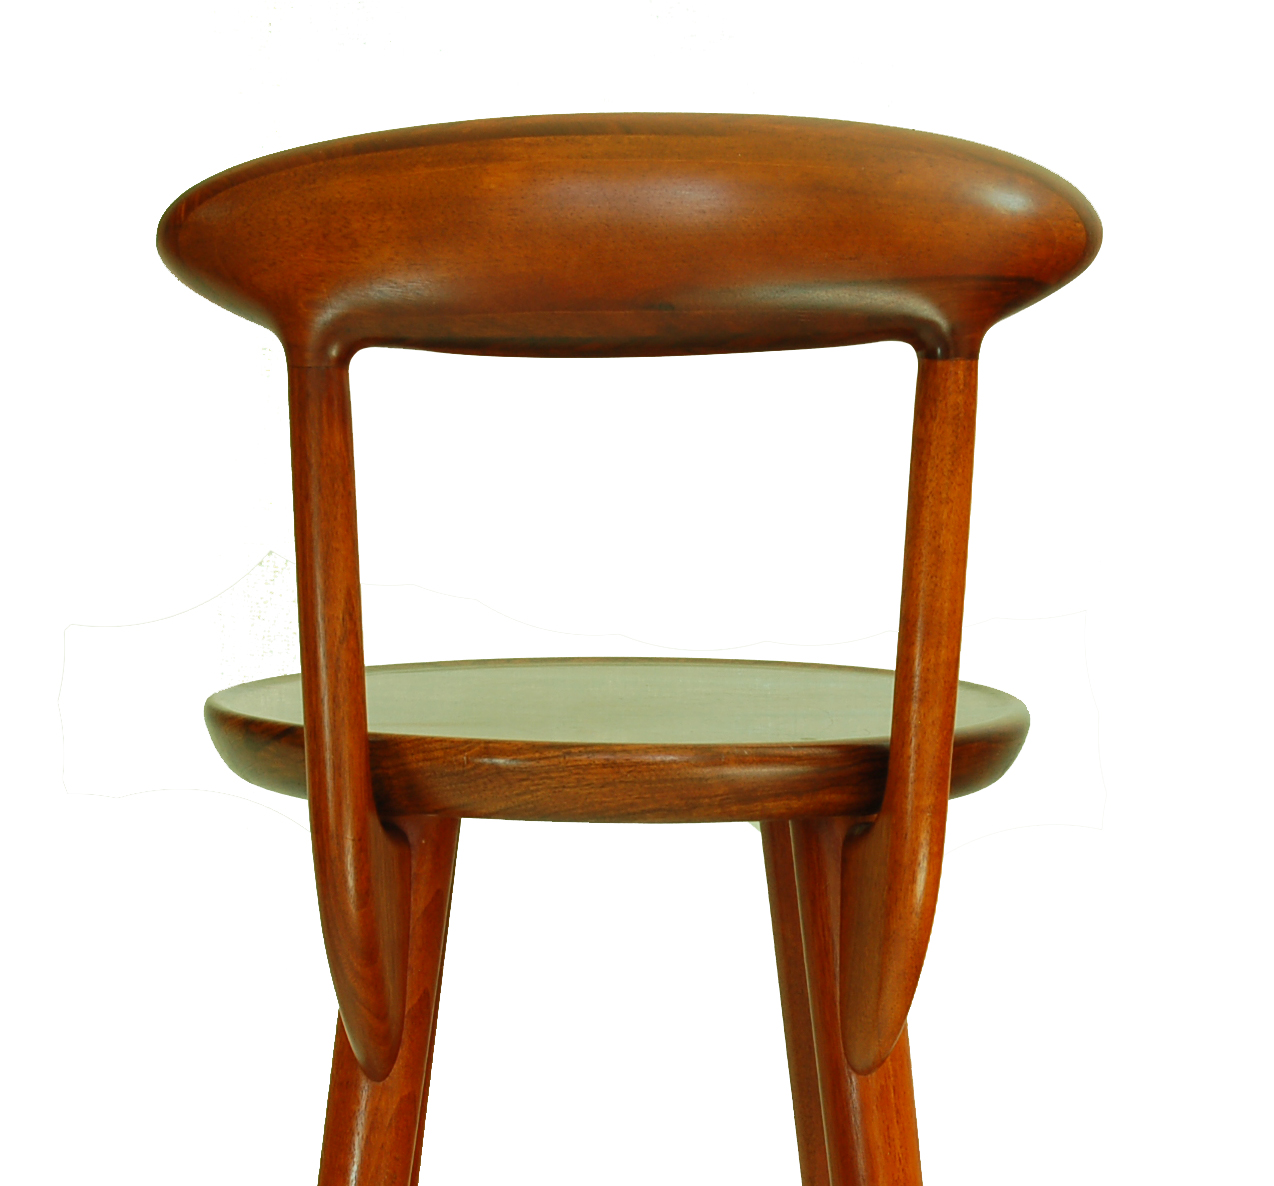 Kurt 216 Stervig Teak Danish Bar Stools Set Of 4 Chairish